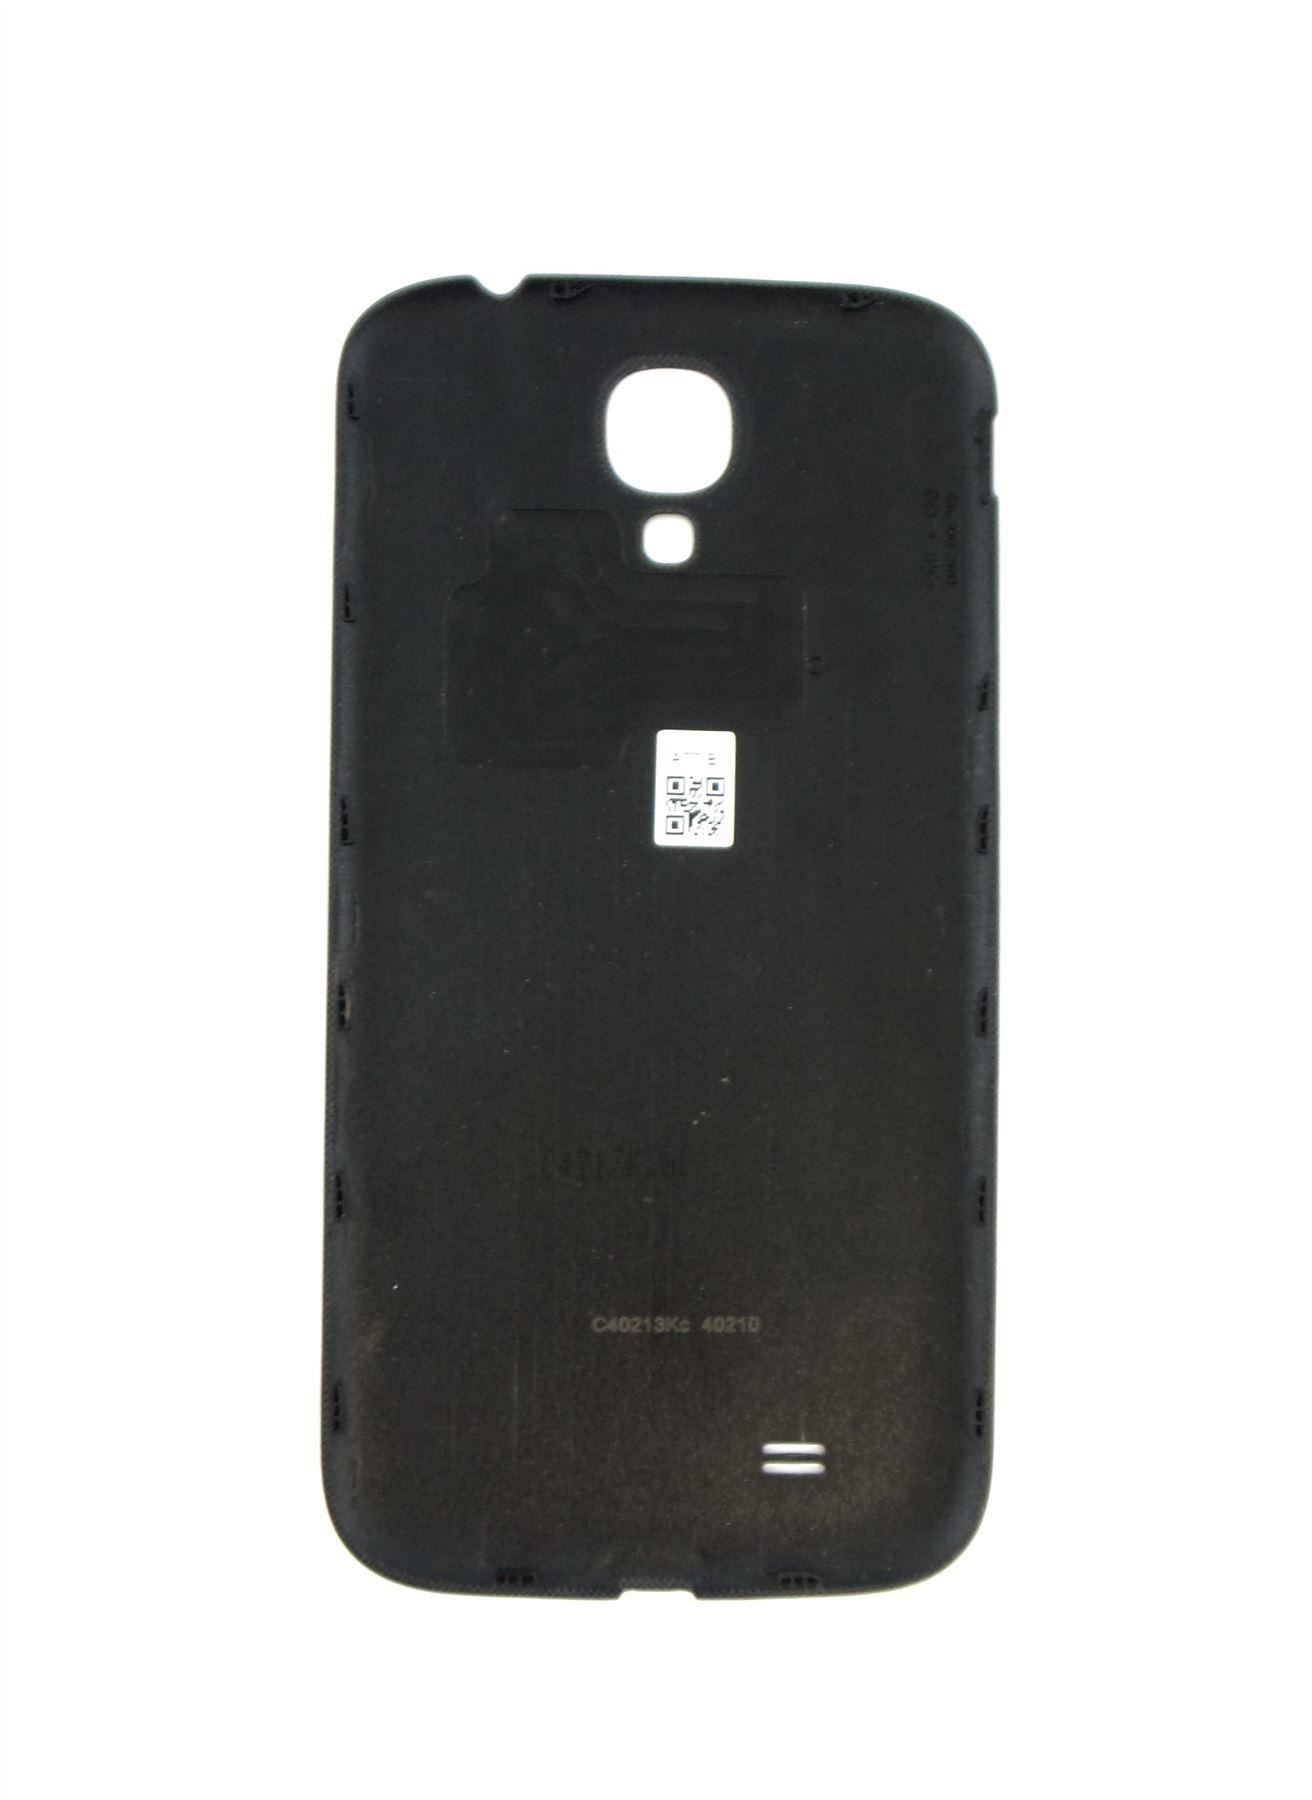 Samsung-Galaxy-S4-Authentic-Battery-Door-Cover-AT-amp-T-Verizon-T-Mobile thumbnail 13